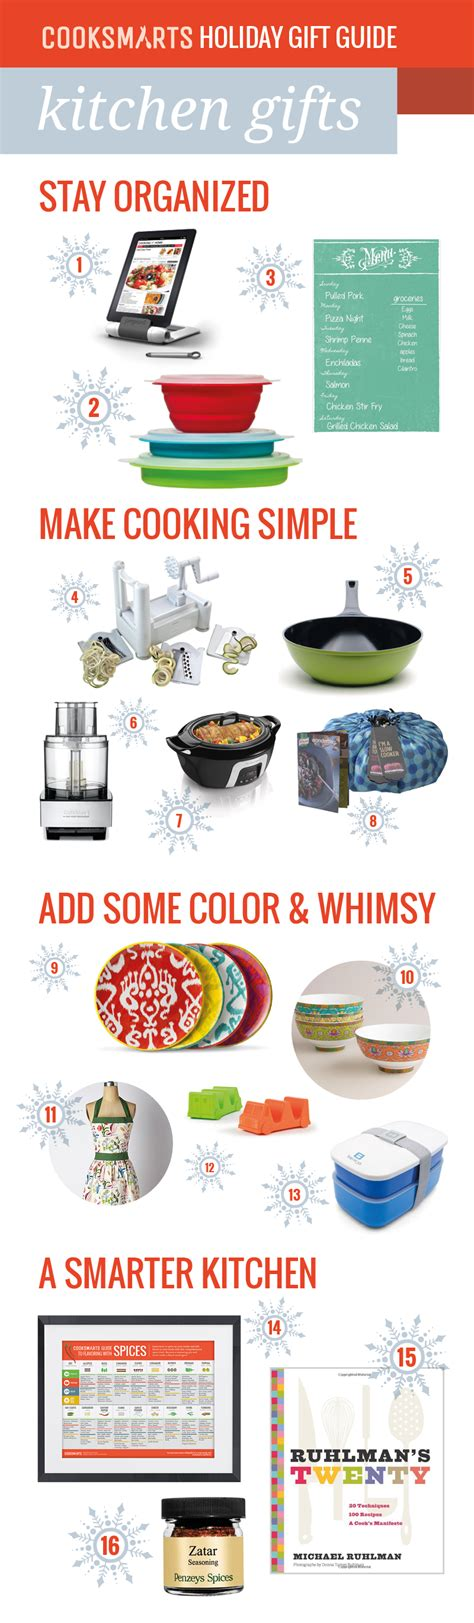 kitchen gifts cook smarts holiday gift guide gifts for cooks